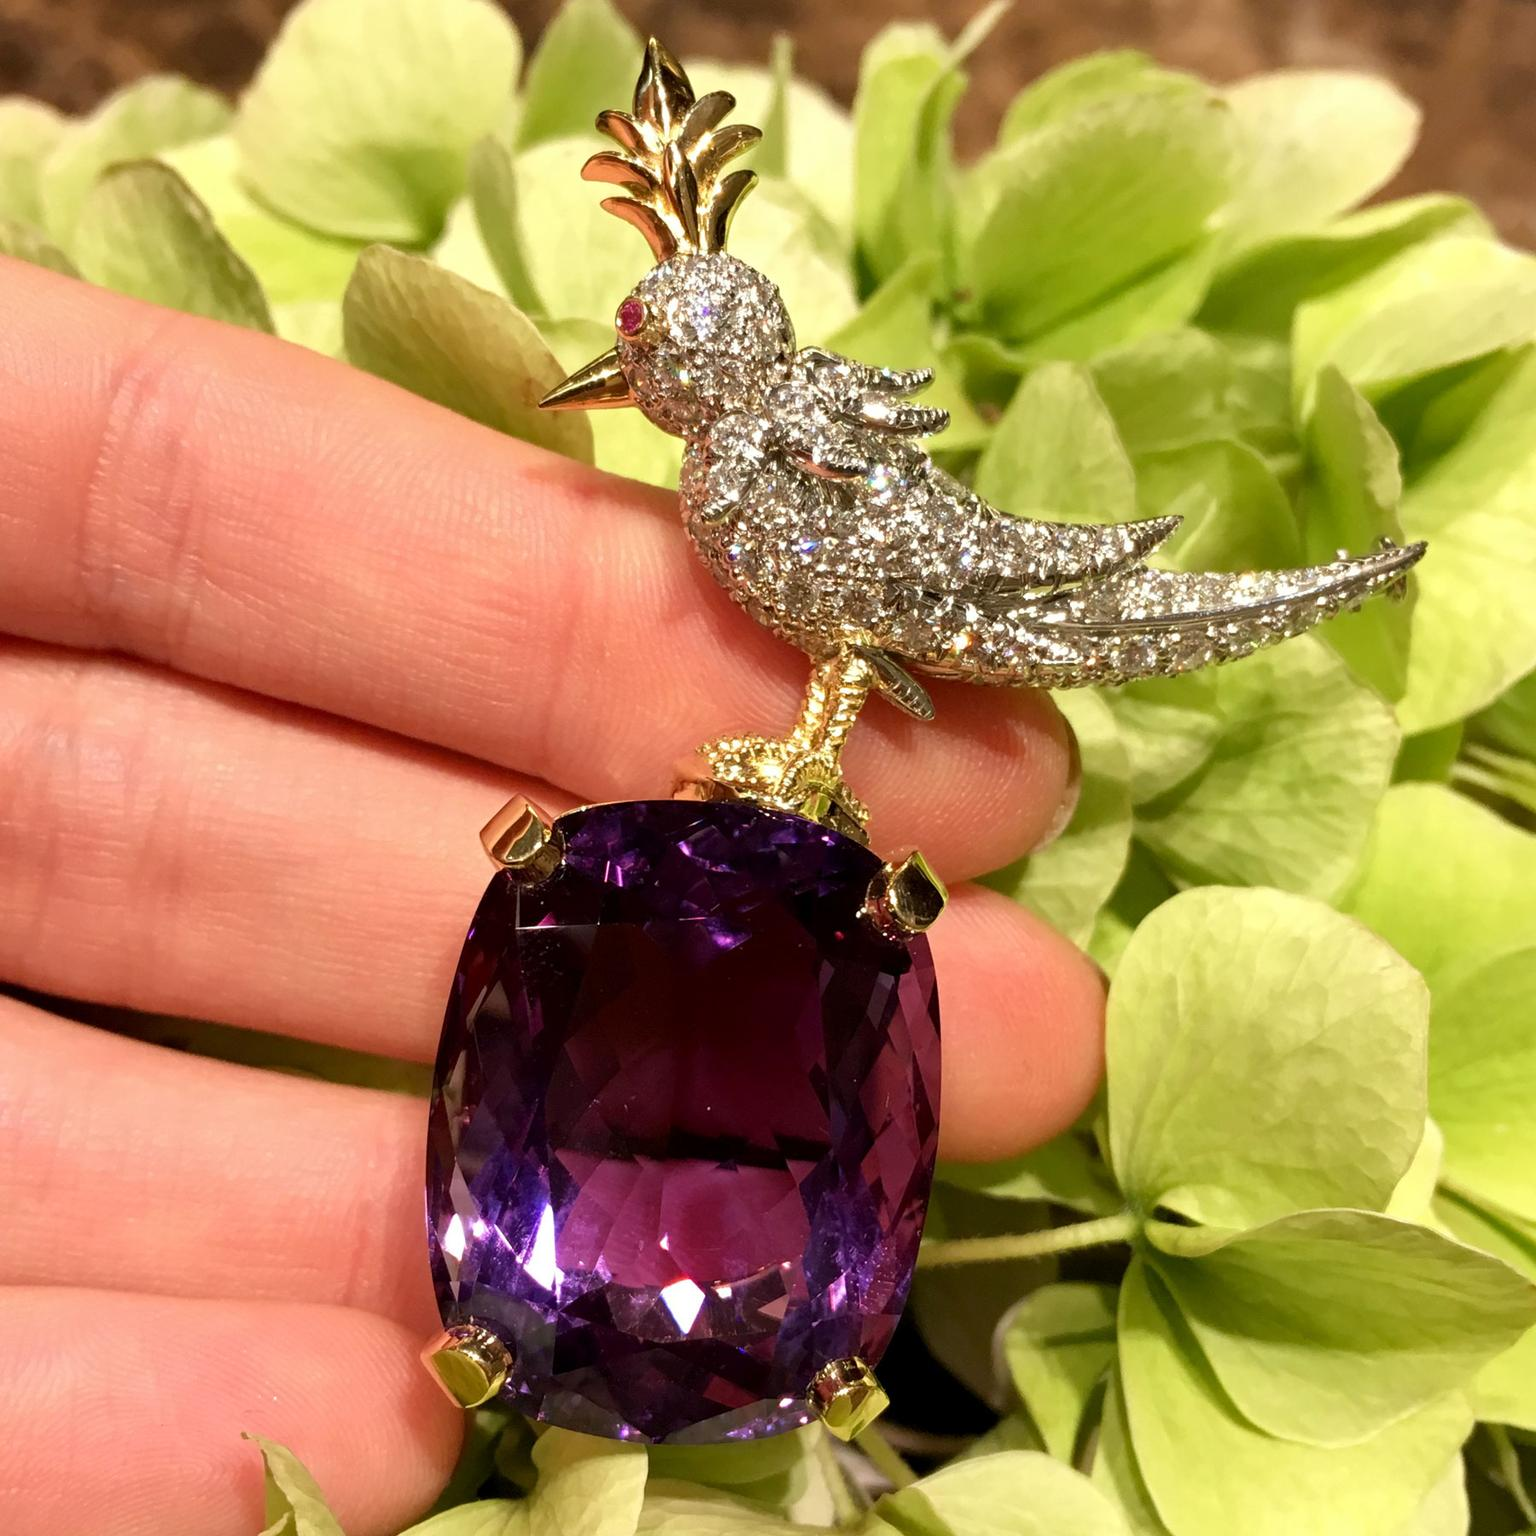 Tiffany Bird on a Rock amethyst brooch